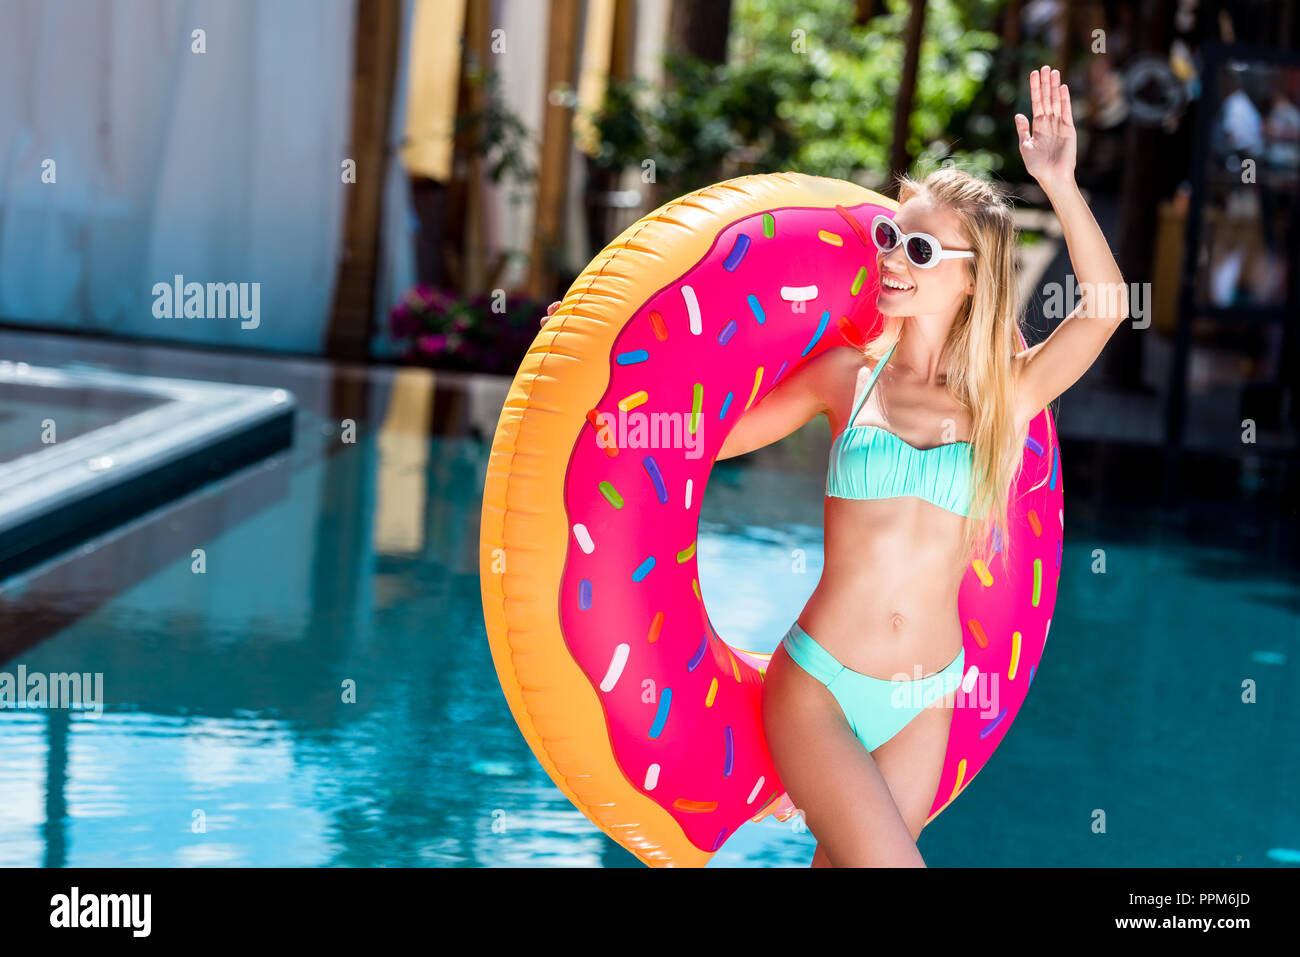 beautiful young woman inflatable ring in shape of donut greeting someone at poolside - Stock Image